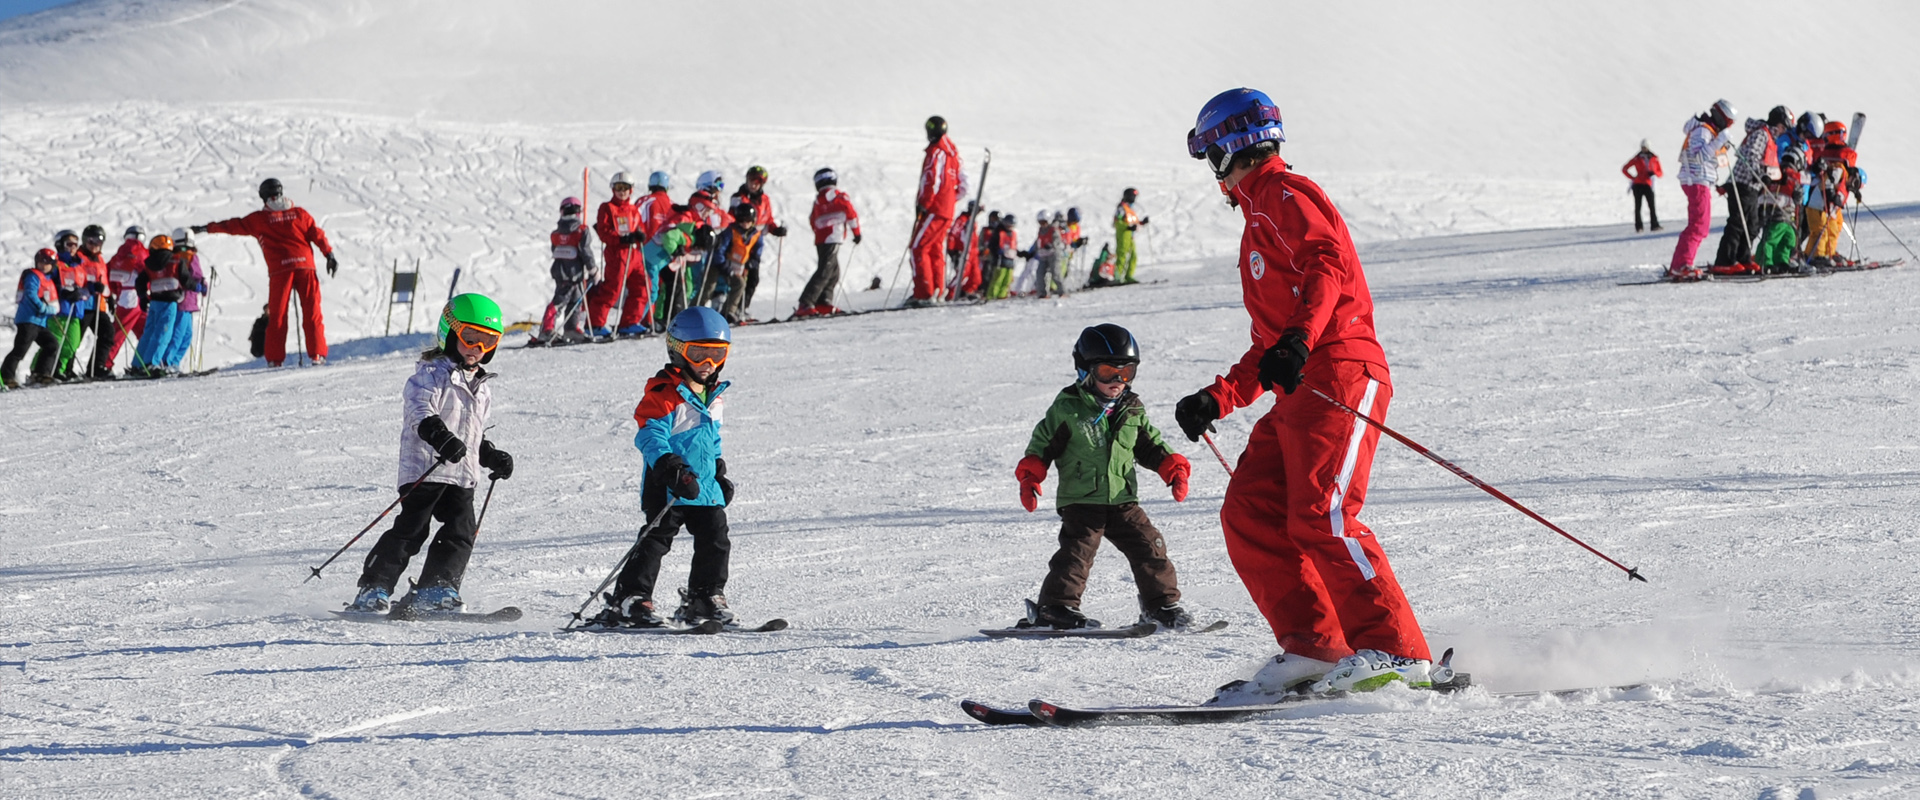 family-friendly kids ski school in Leukerbad